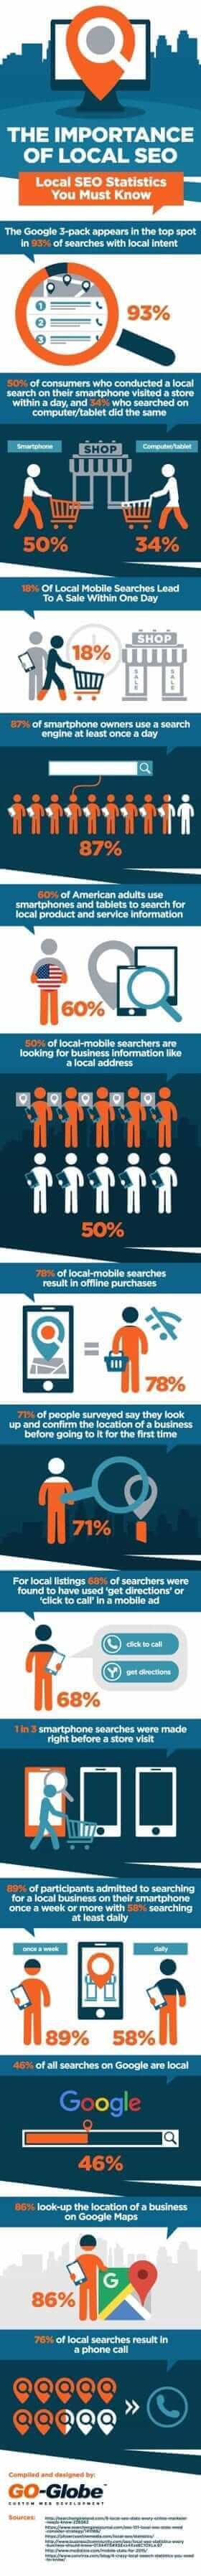 local seo stats infographic